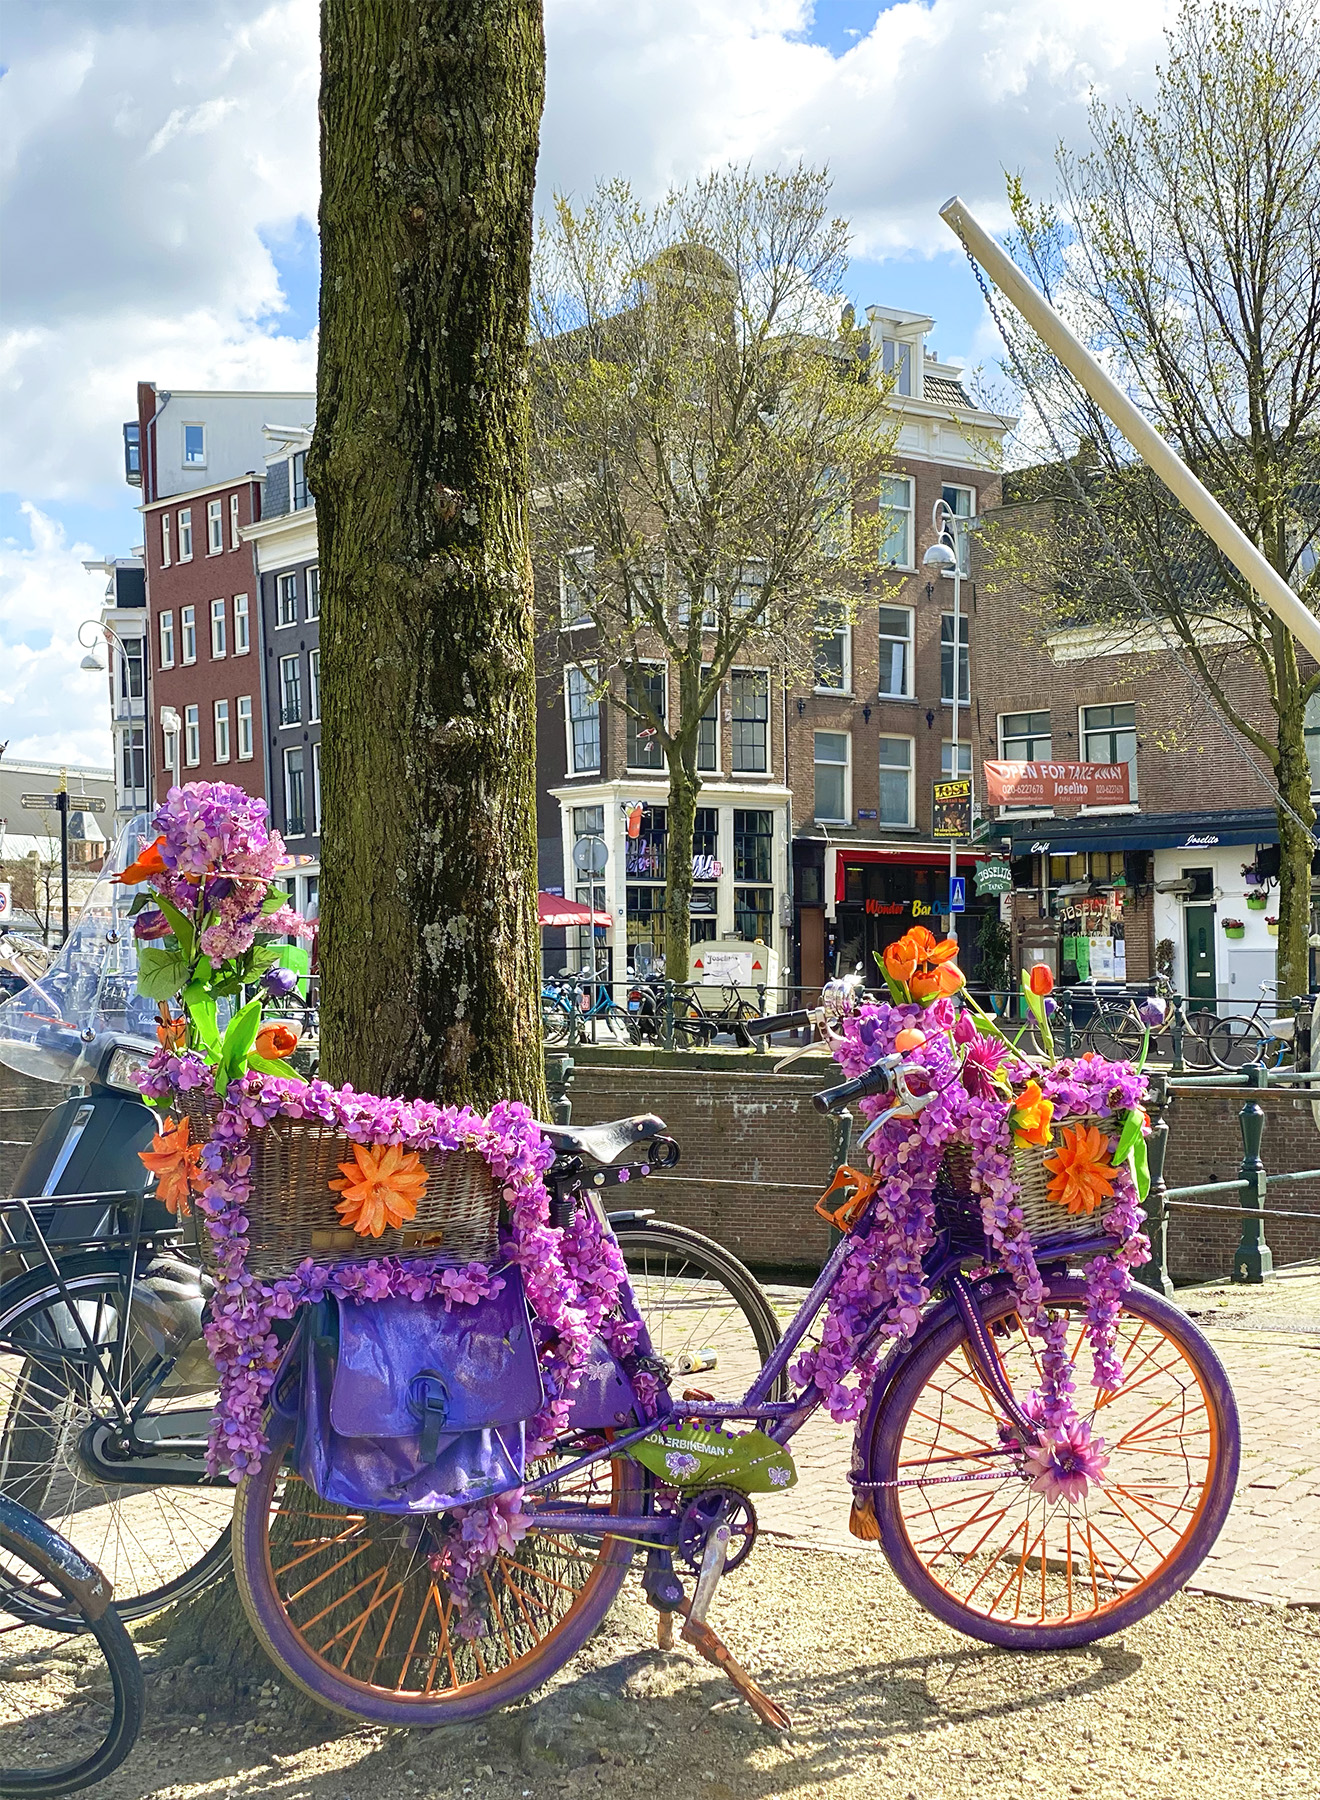 Bicycle covered in flowers on the streets in Amsterdam